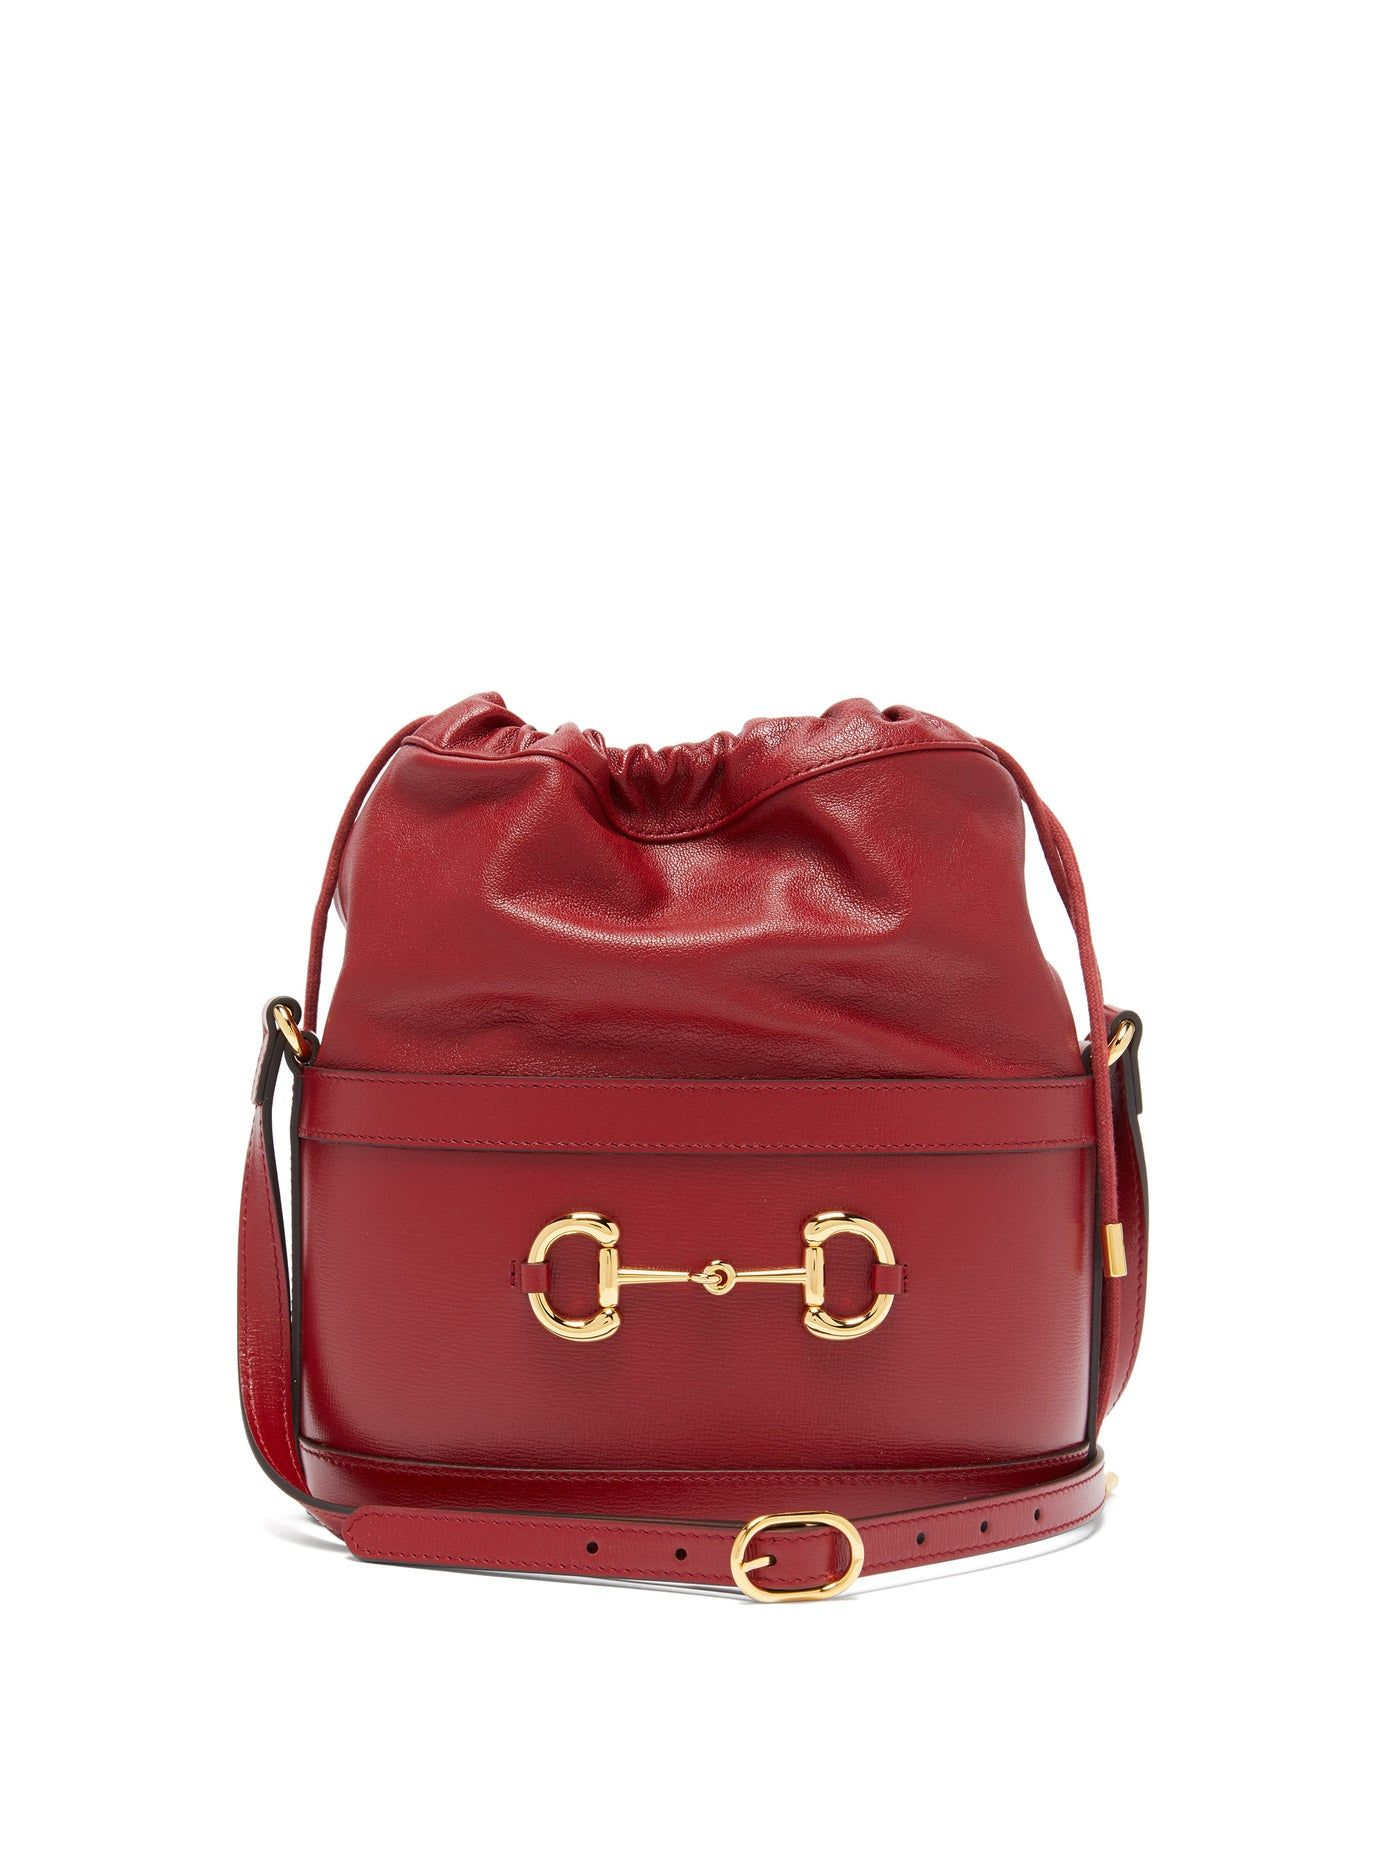 Gucci-1955-Horsebit-grained-leather-bucket-bag-red